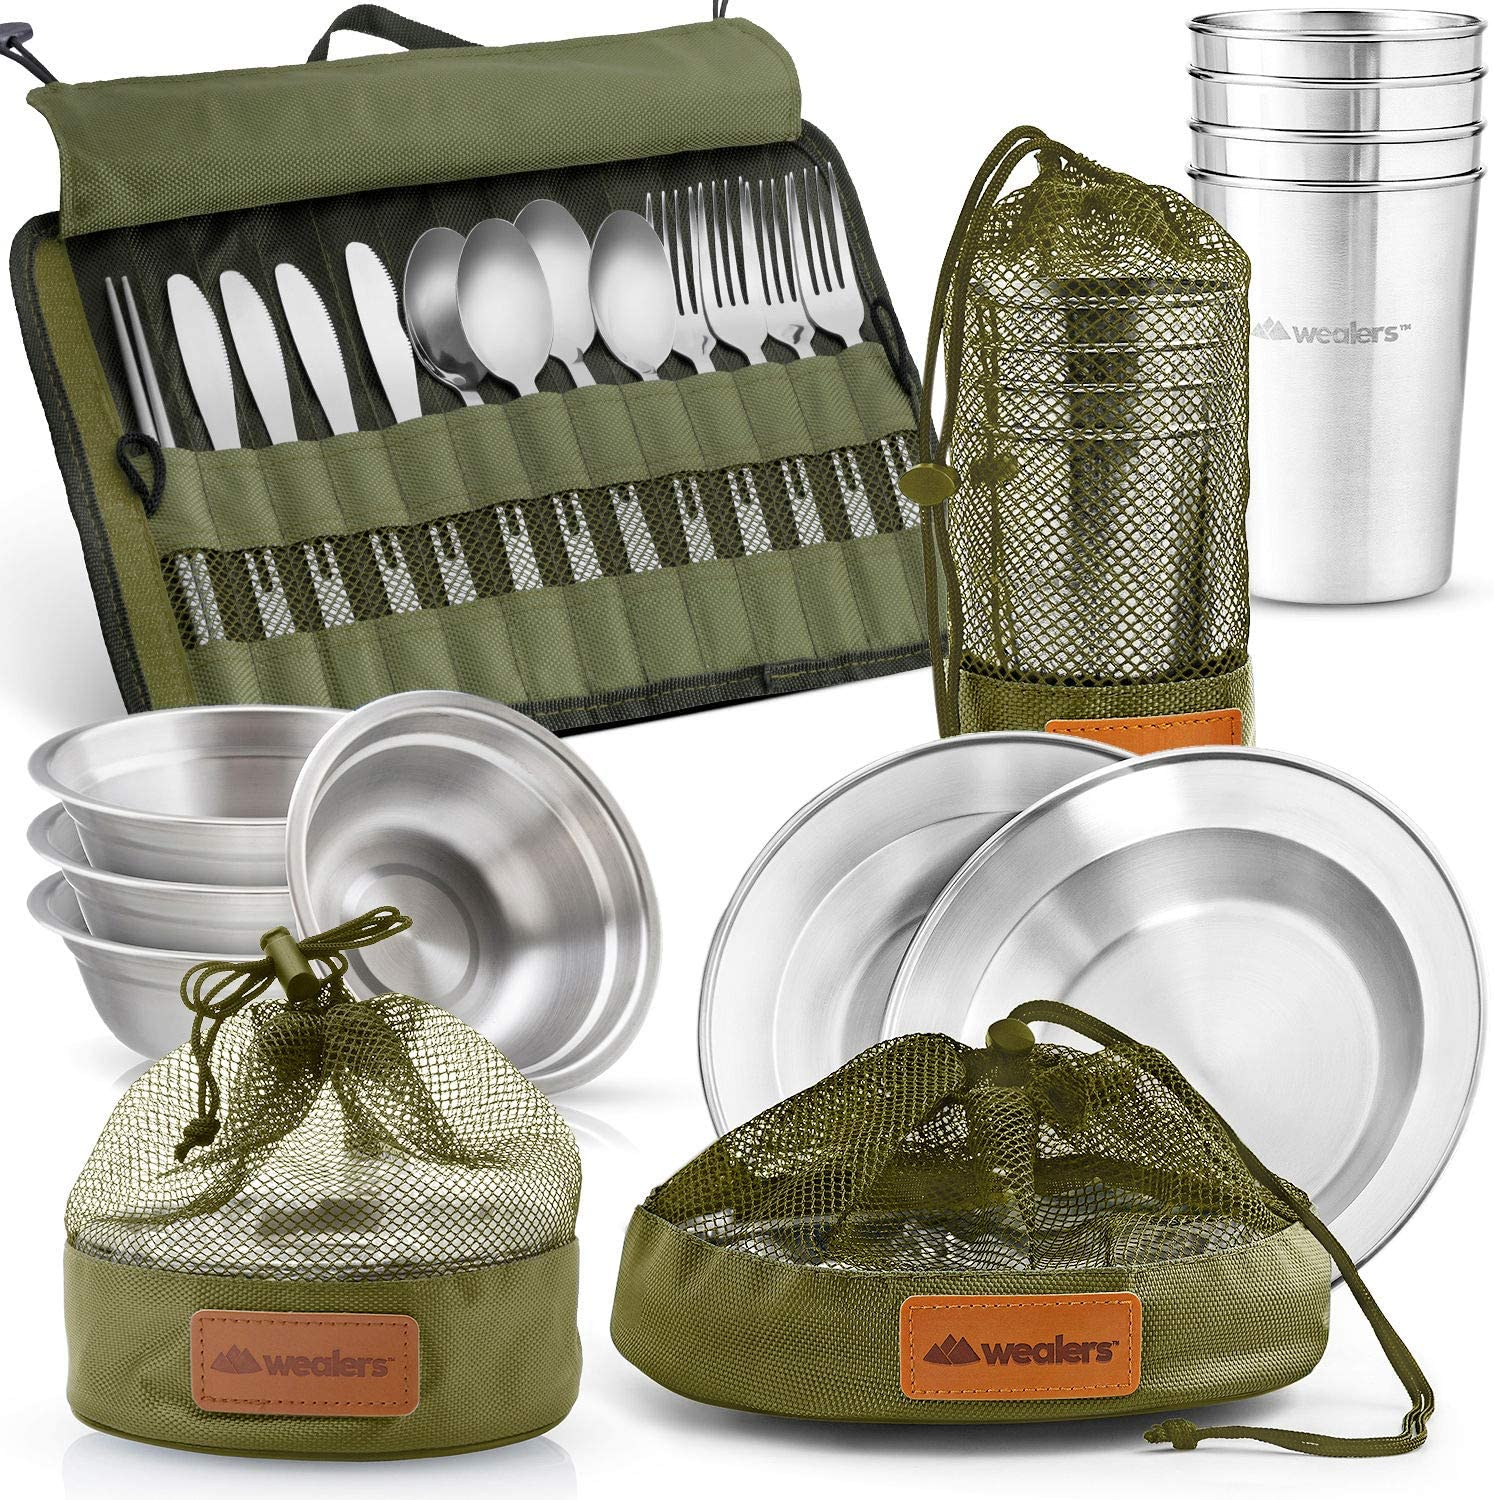 Cups 4 Person Set Wealers Unique Complete Messware Kit Polished Stainless Steel Dishes Set  Tableware  Dinnerware  Camping  Buffet  Includes Plates  Bowls  Cutlery  Comes in Mesh Bags